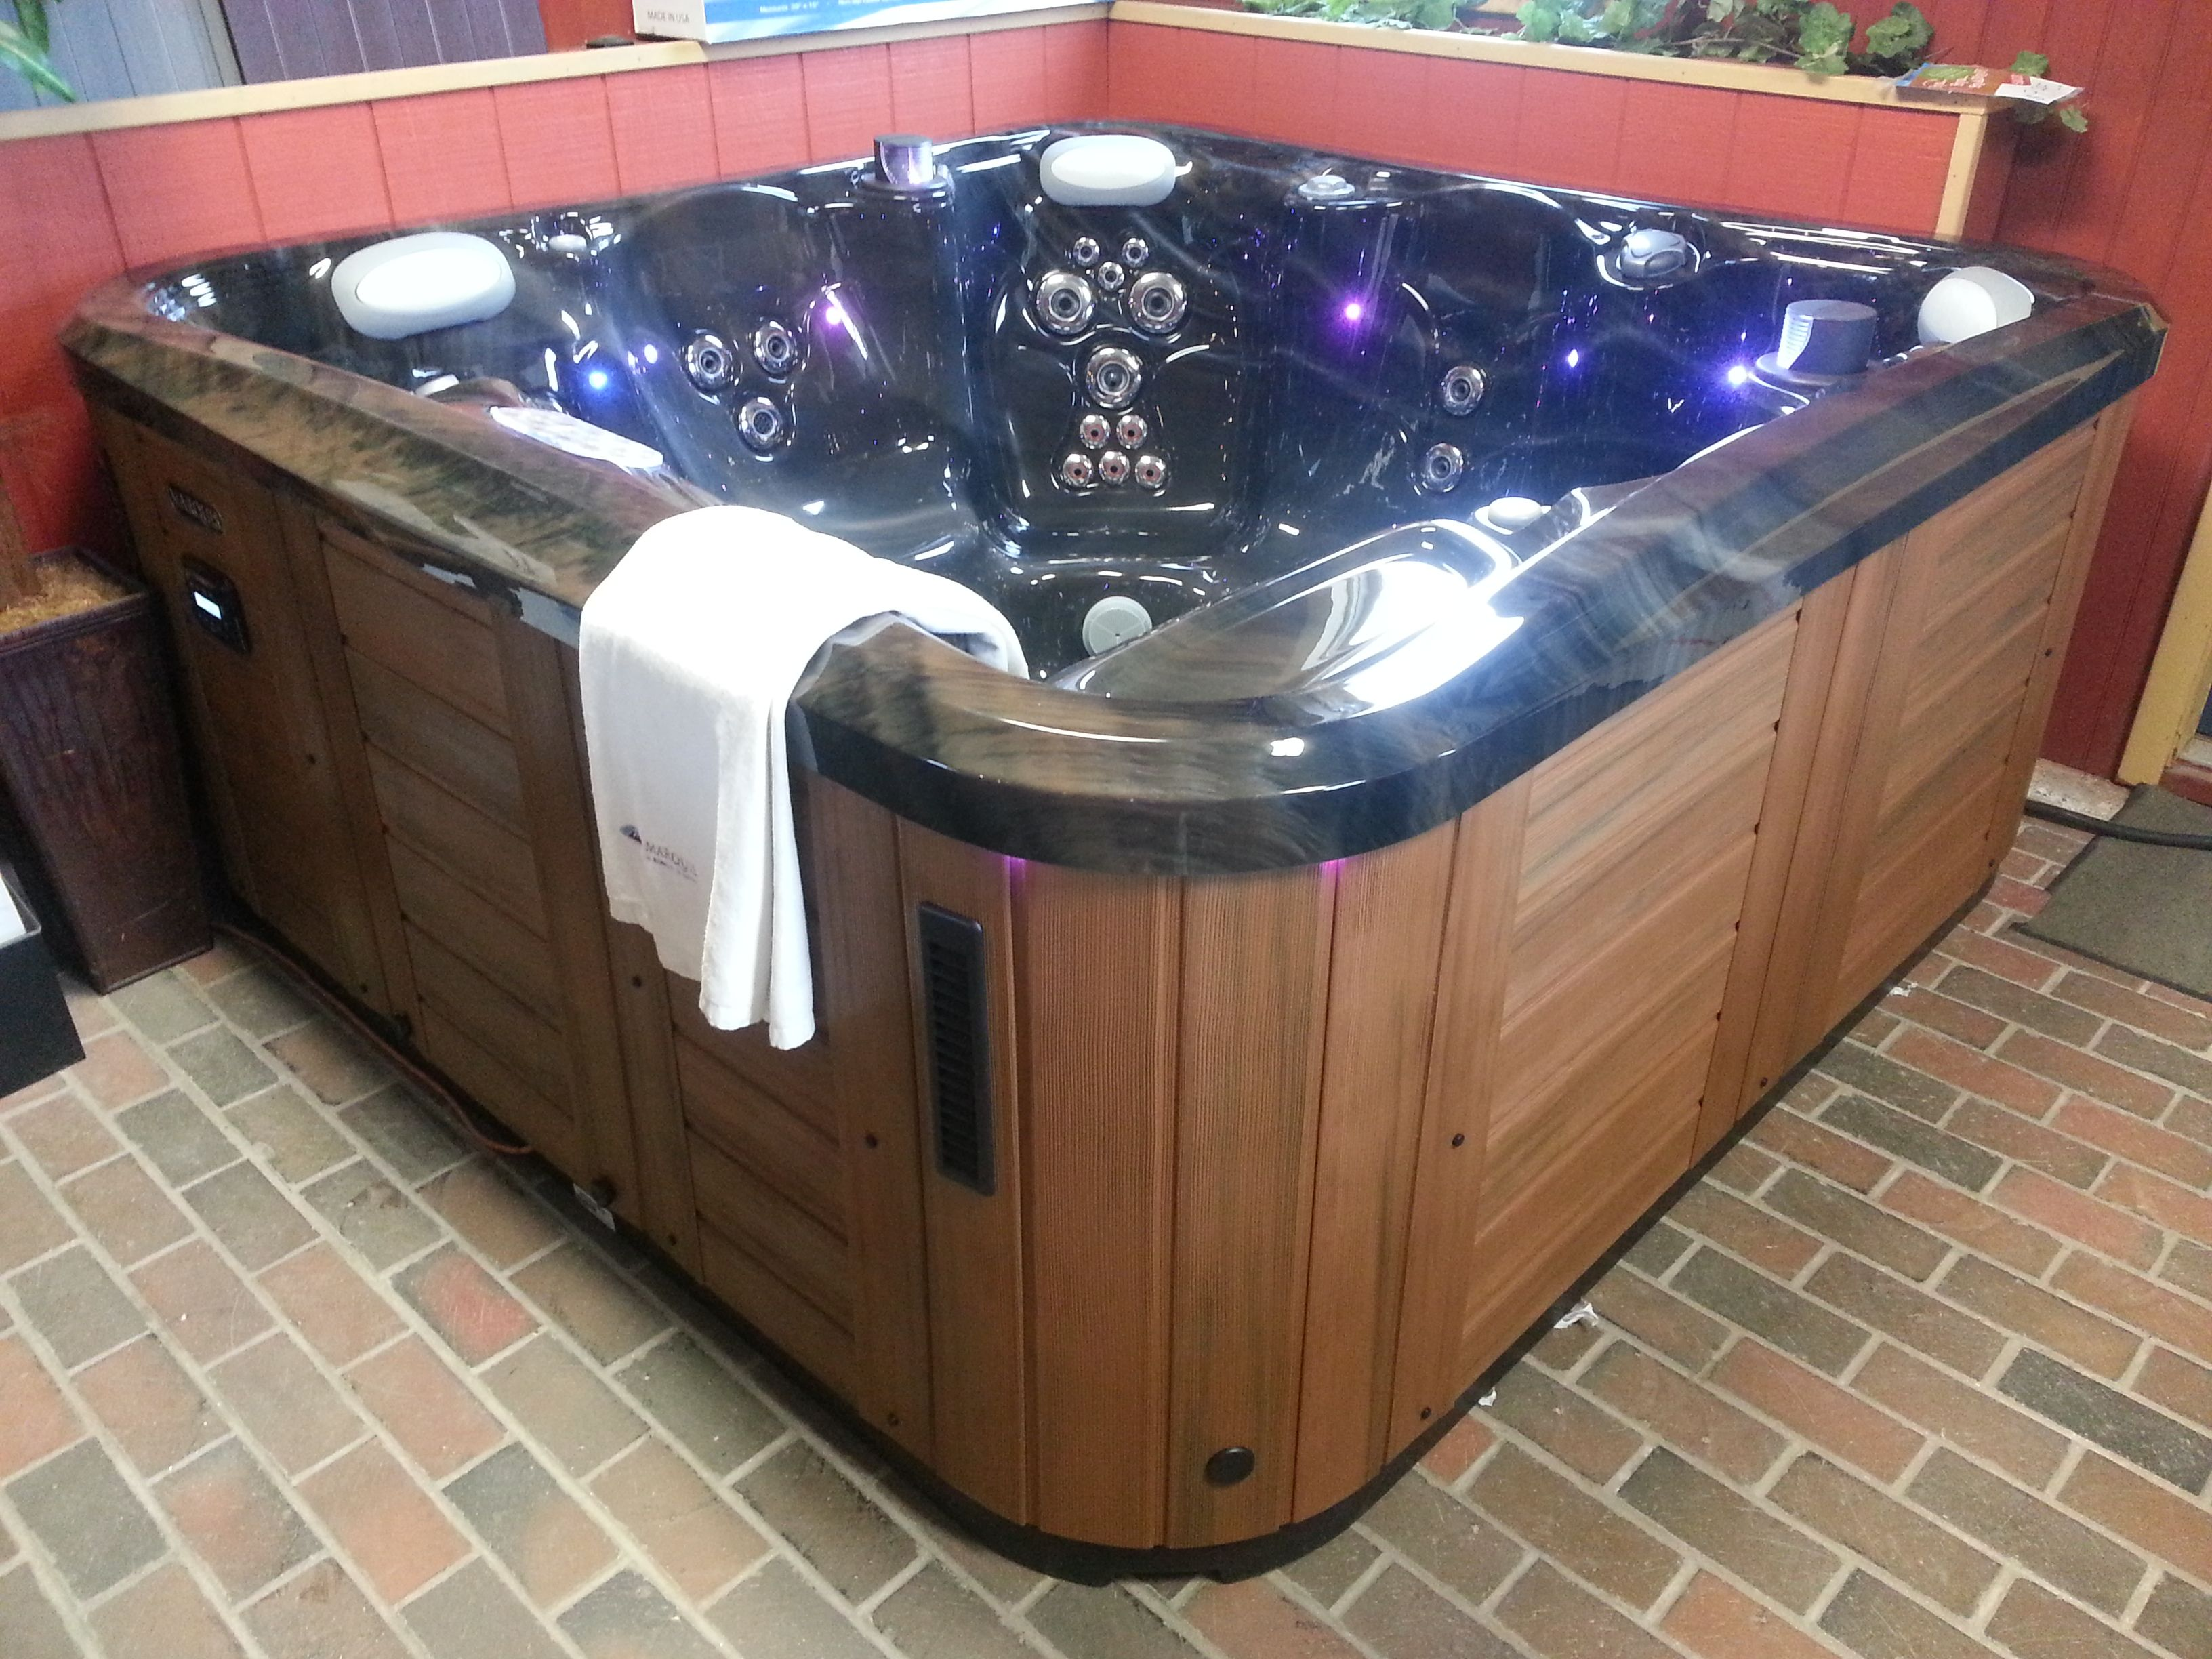 Amazing color bination on this 7 Marquis Reward hot tub just